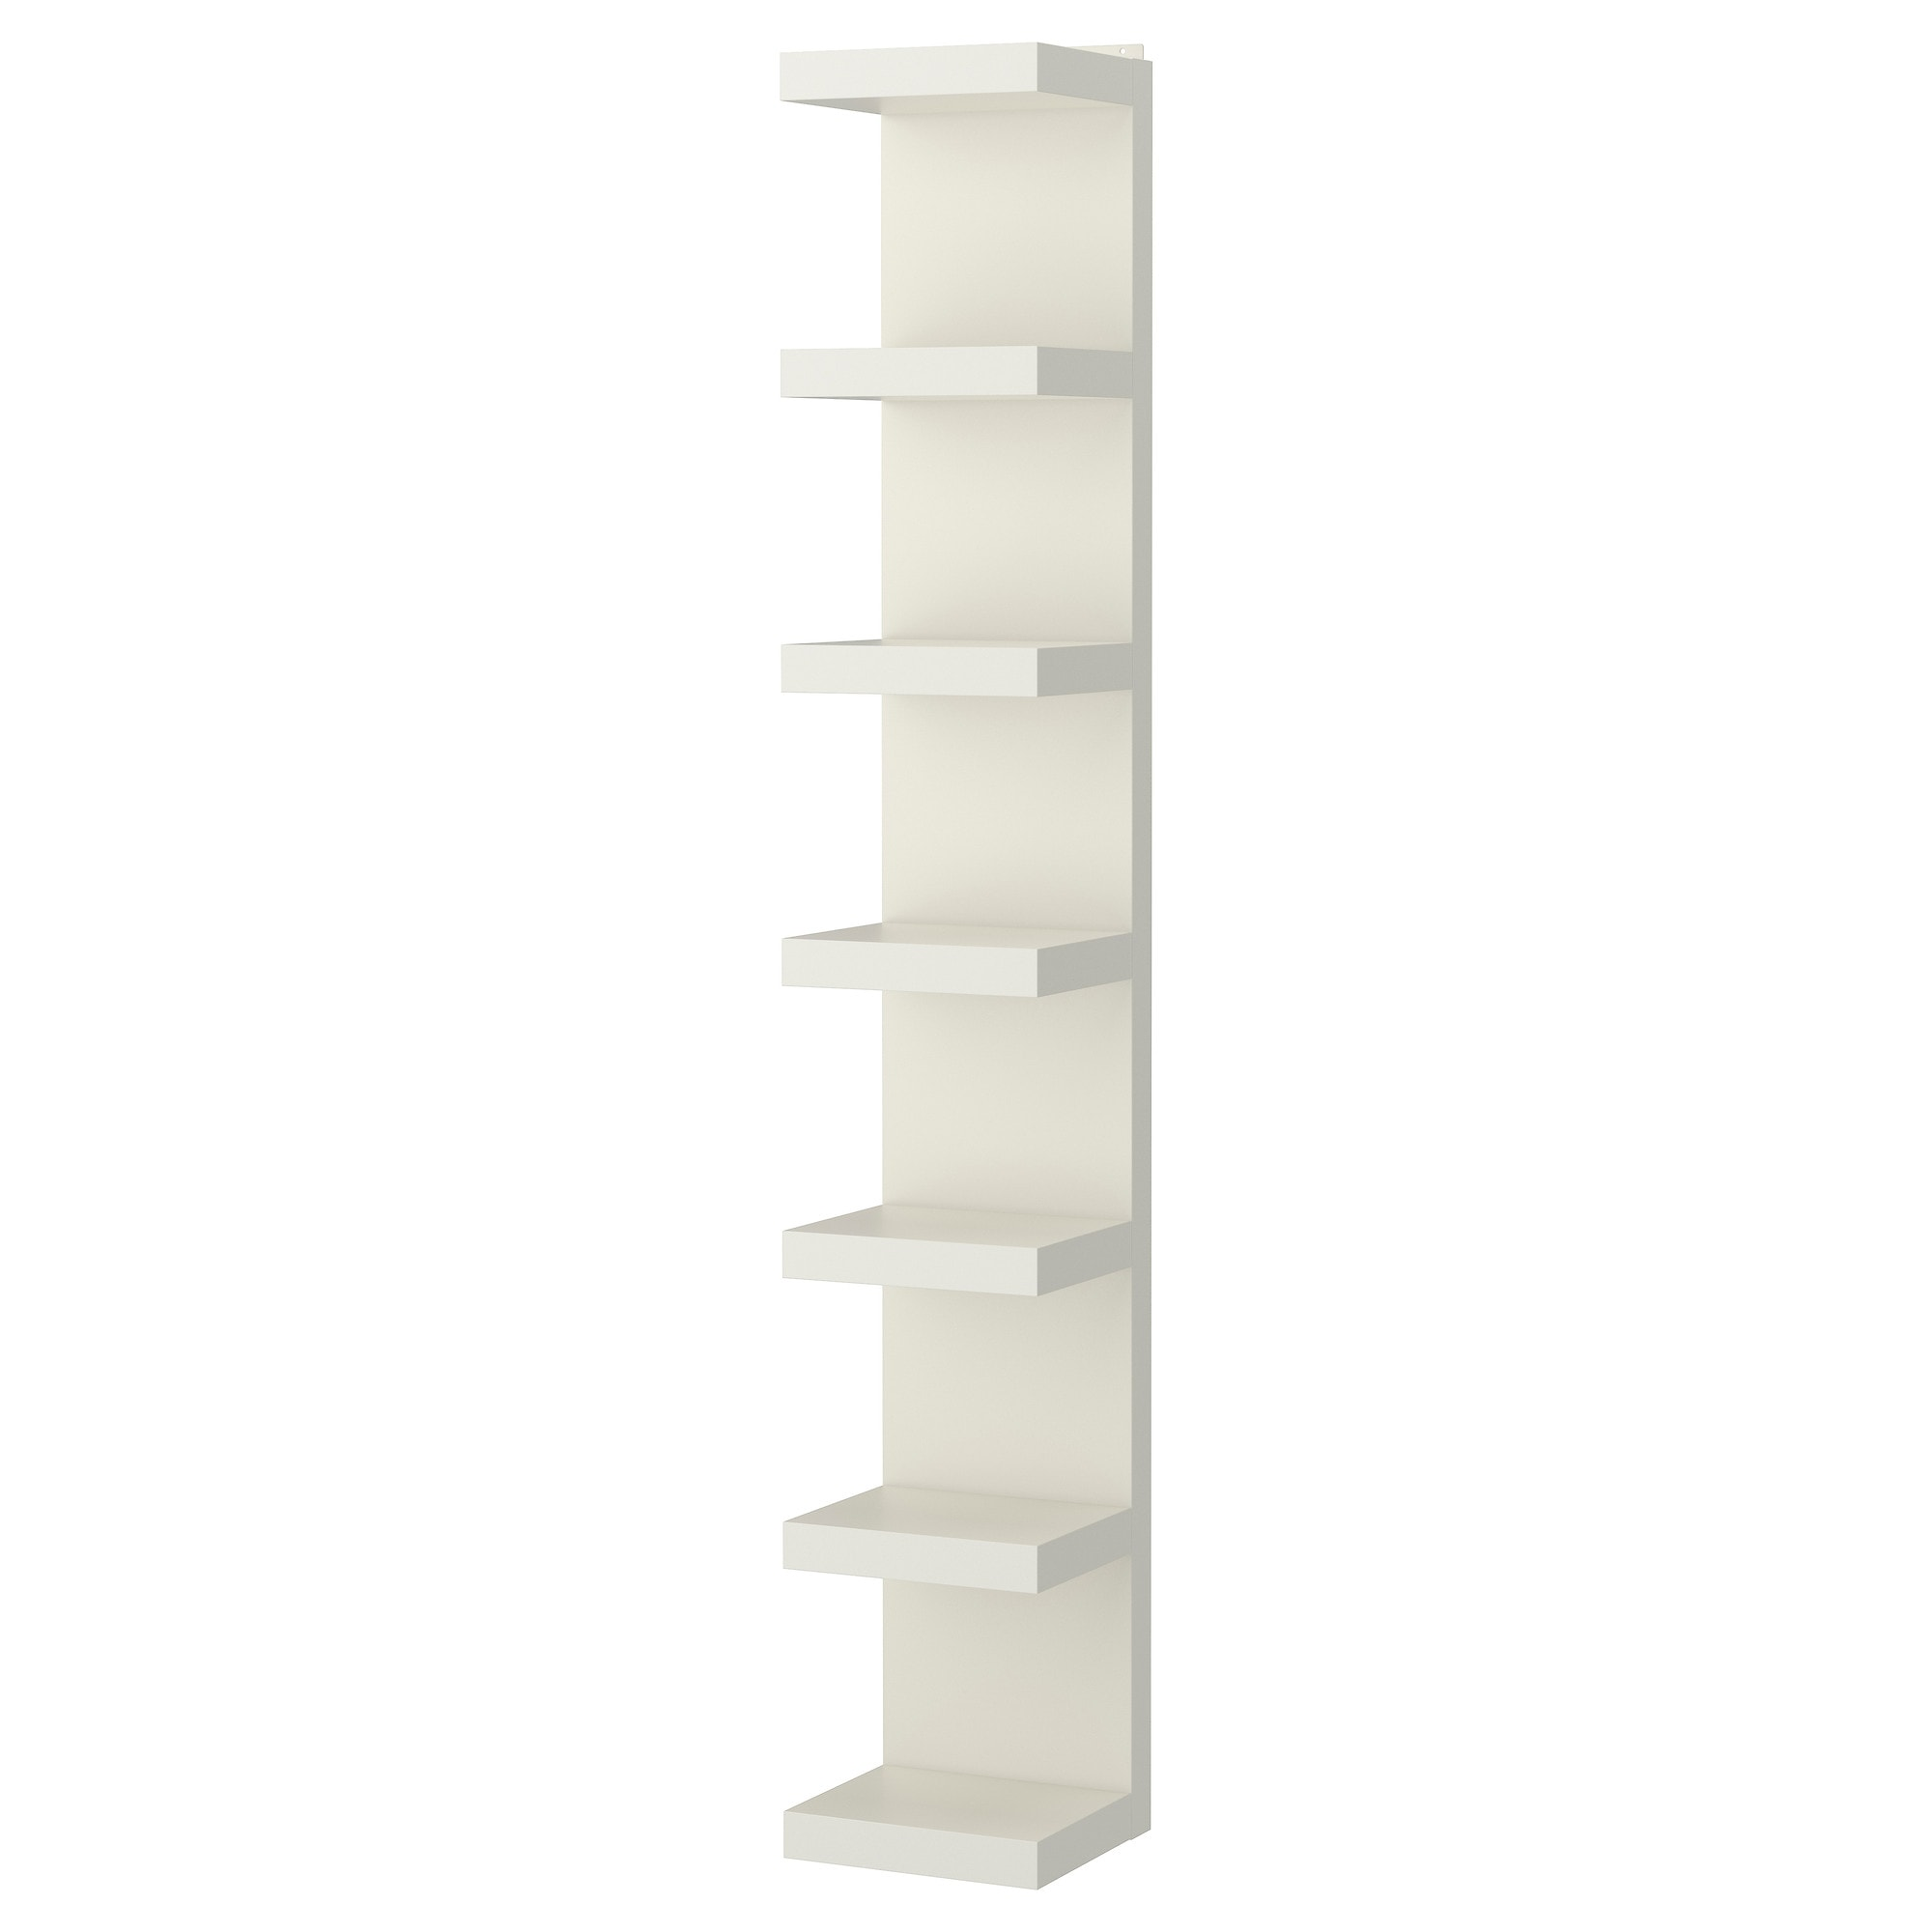 official photos bb184 02ff9 Wall shelf unit LACK white